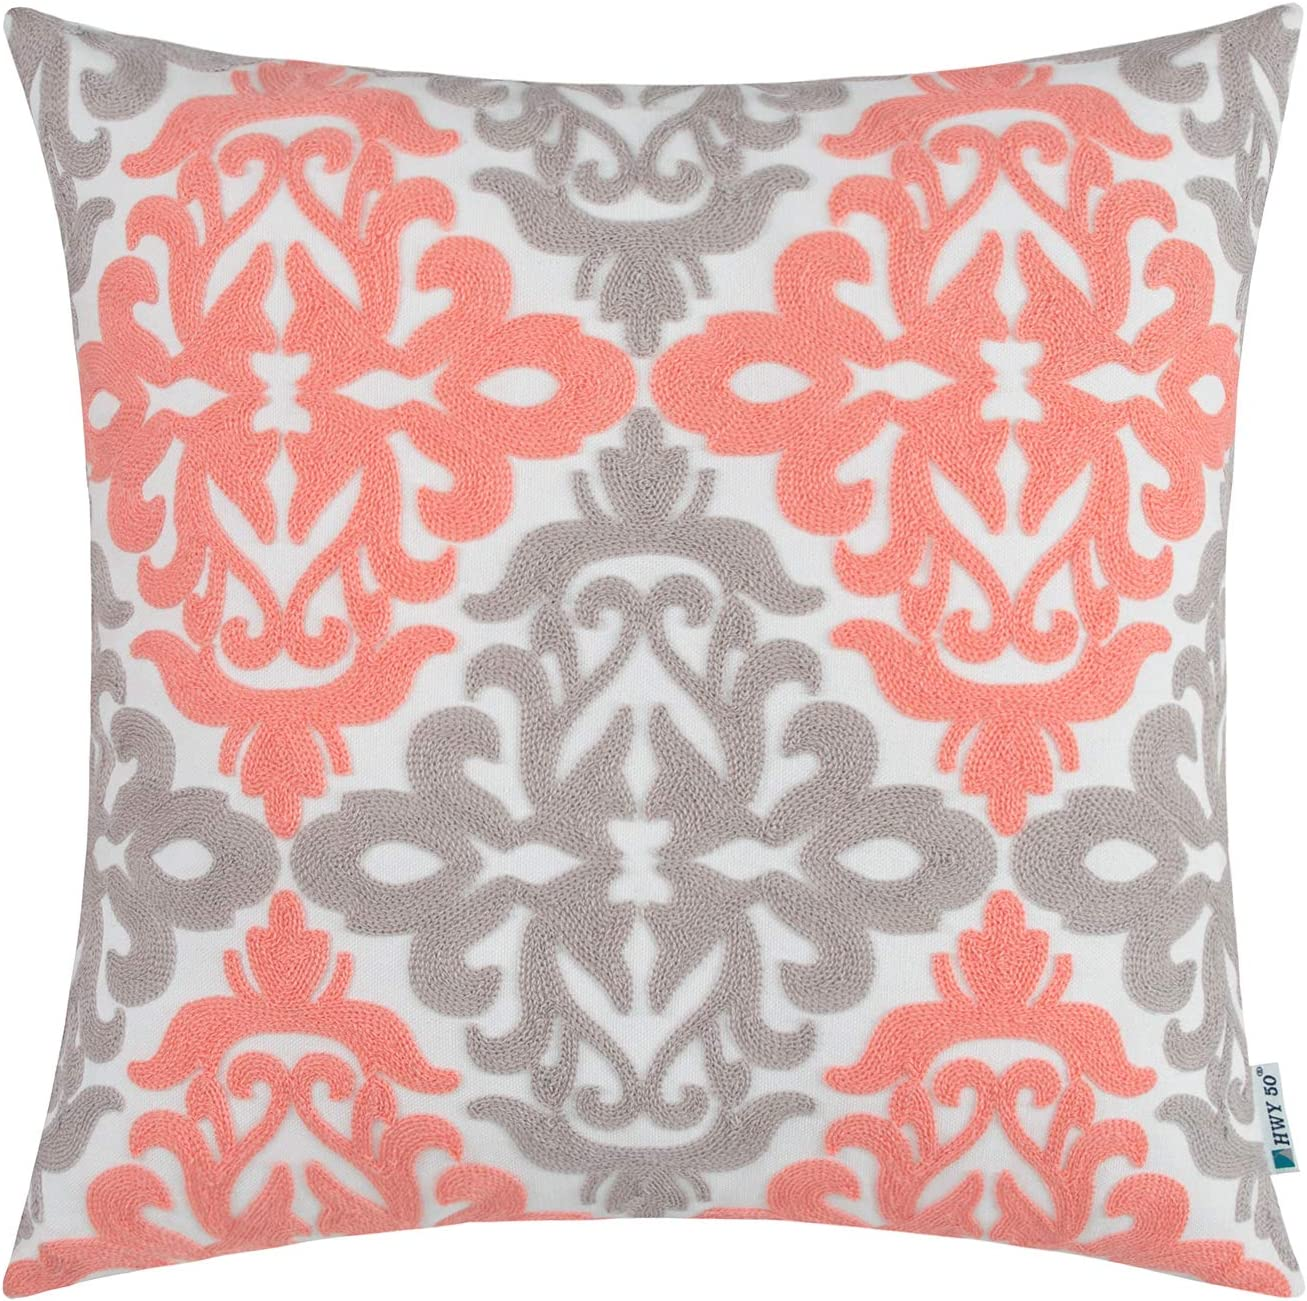 HWY 50 Coral Pink Grey Decorative Embroidered Throw Pillow Covers Cushion Cases for Couch Sofa Living Room 18 x 18 inch Accent Rustic Geometric 1 Piece